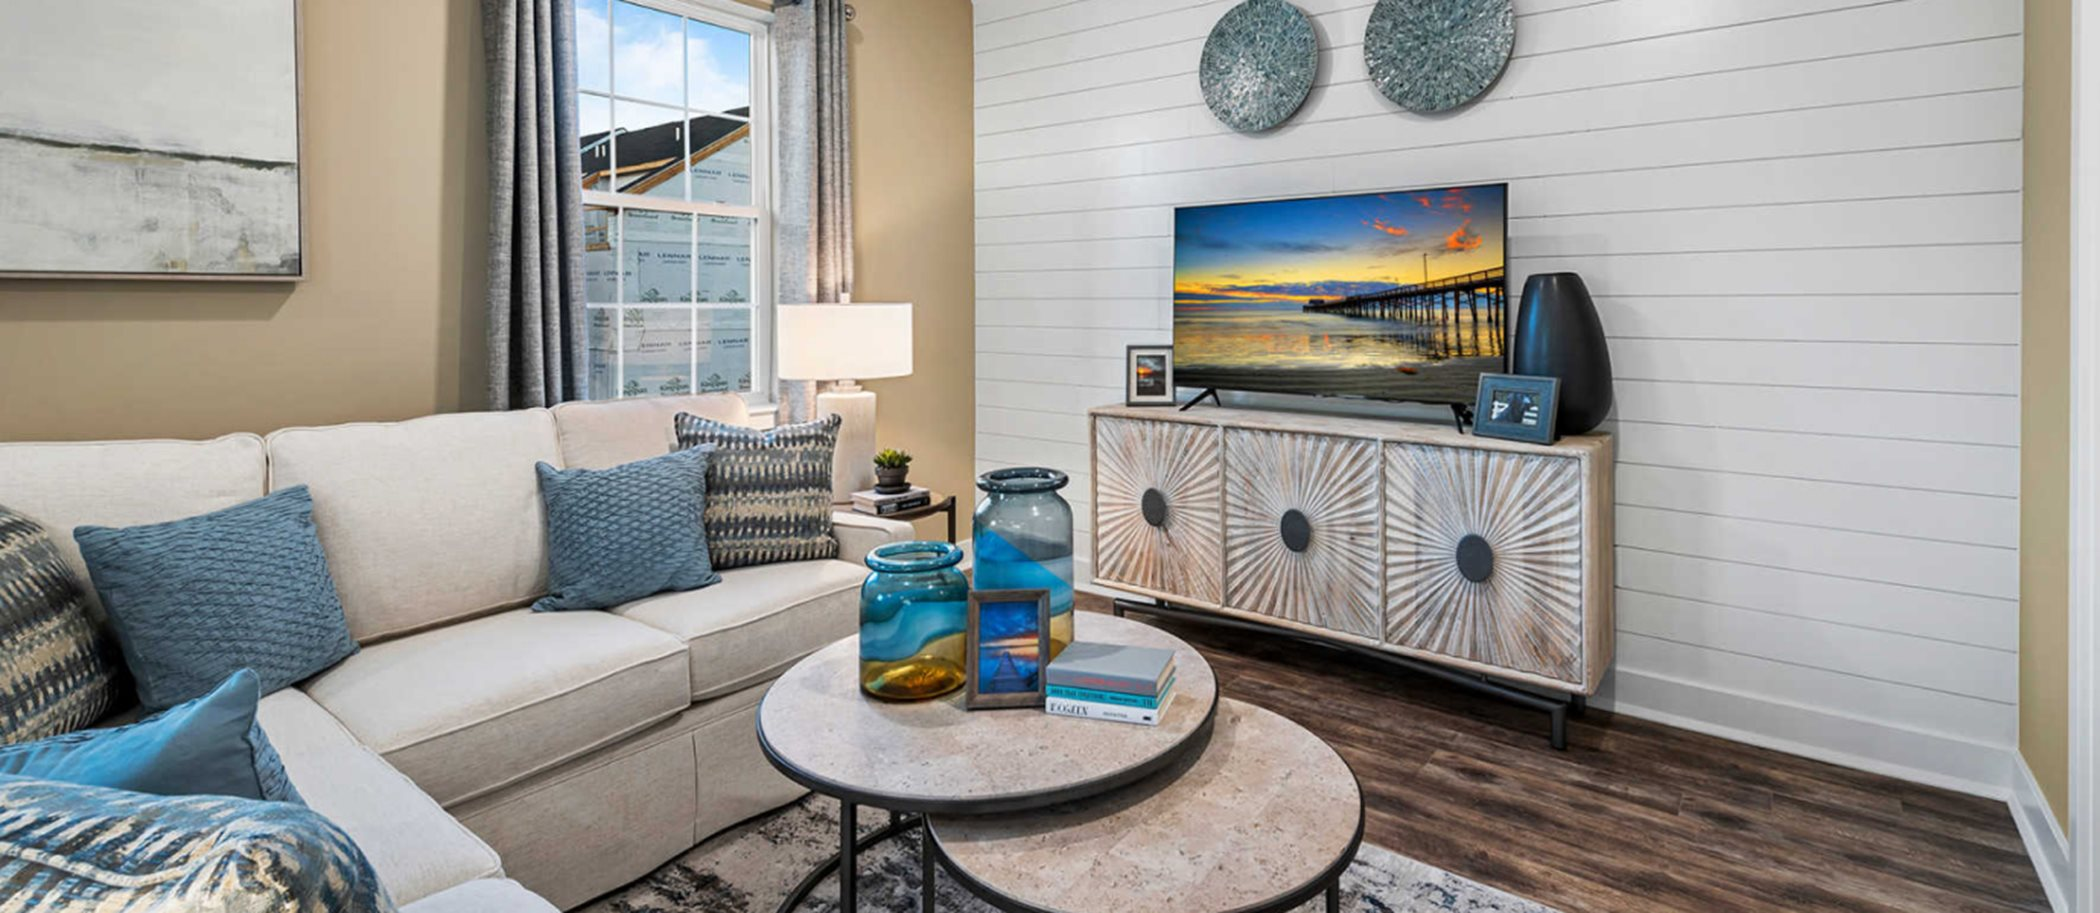 Waterside-By-Lennar Waterside Contemporary Towns Delaware Room